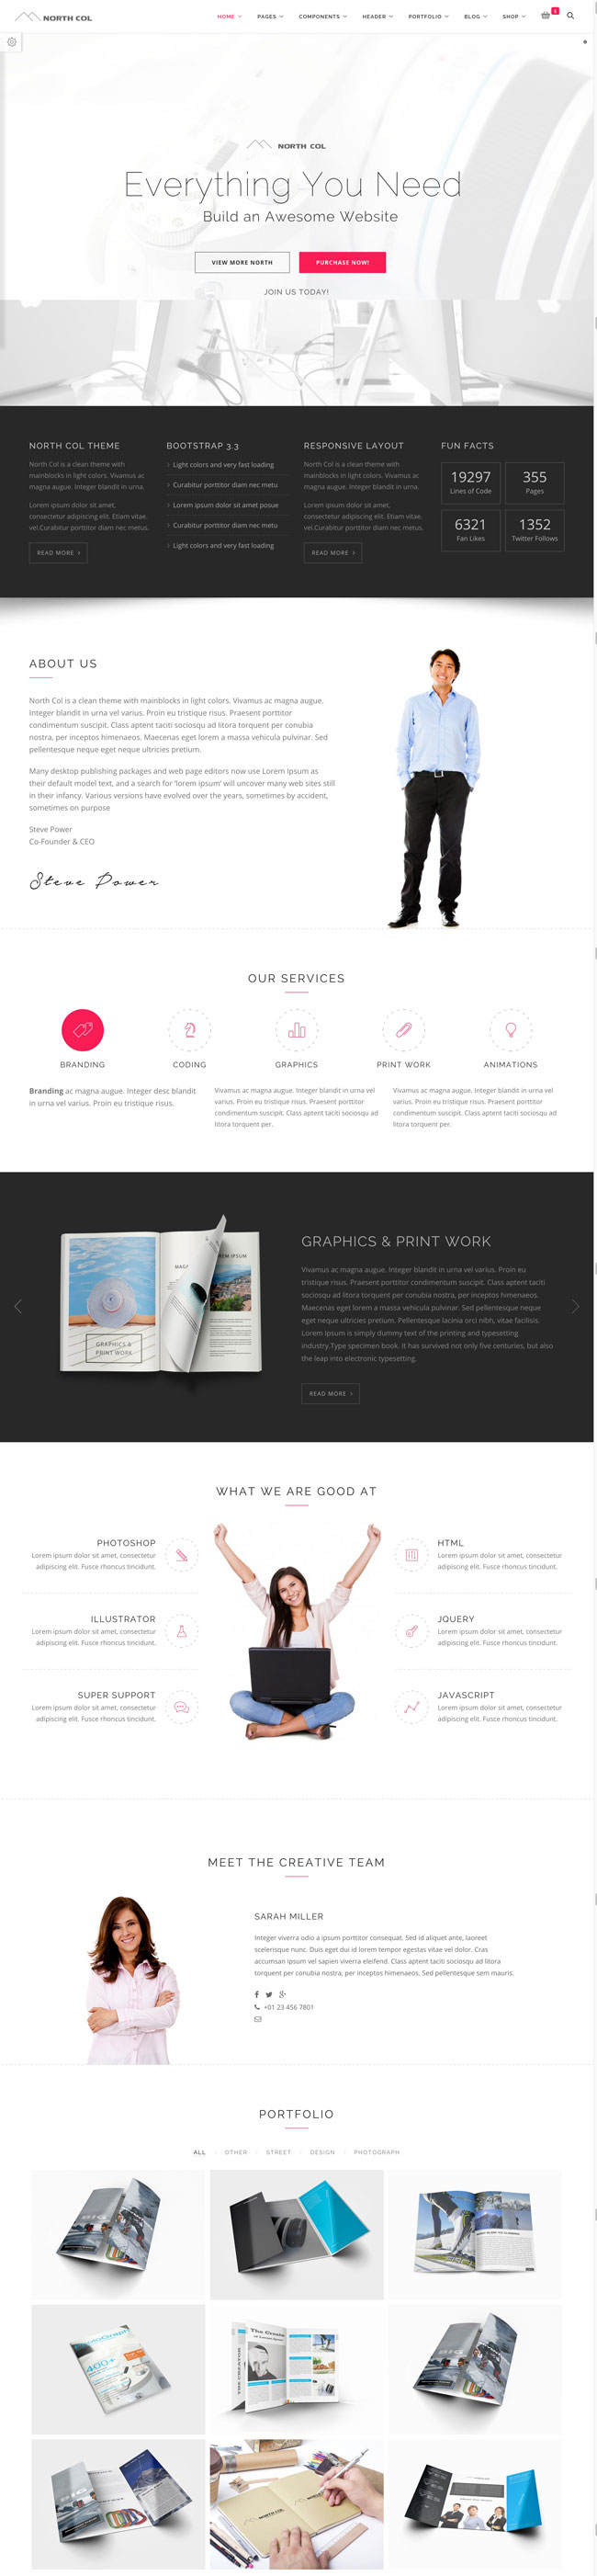 North-Col-MultiPurpose-Bootstrap-Wordpress-Theme